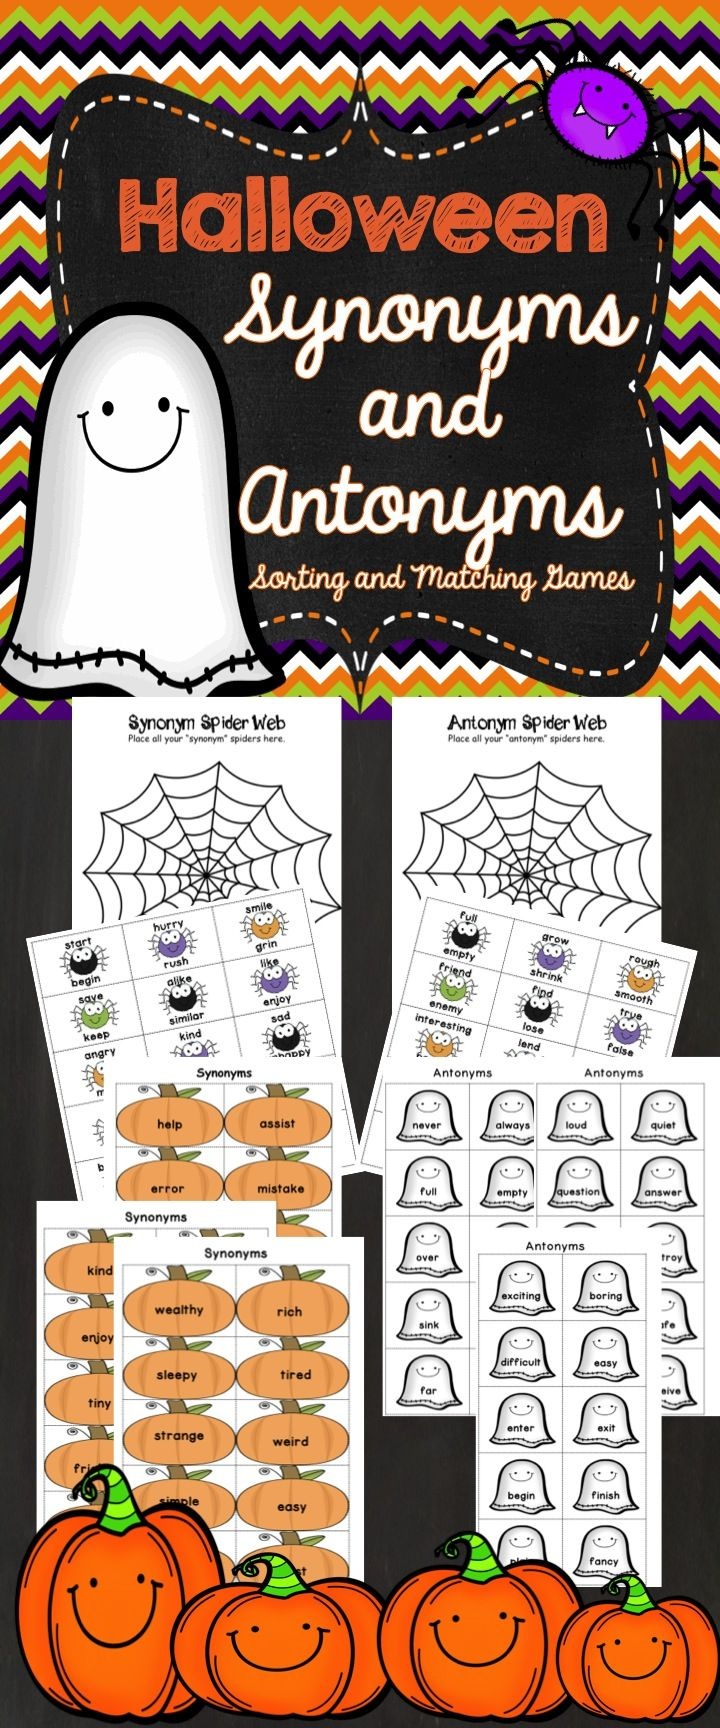 Worksheet Tiny Antonyms tiny antonyms scalien mikyu free worksheet